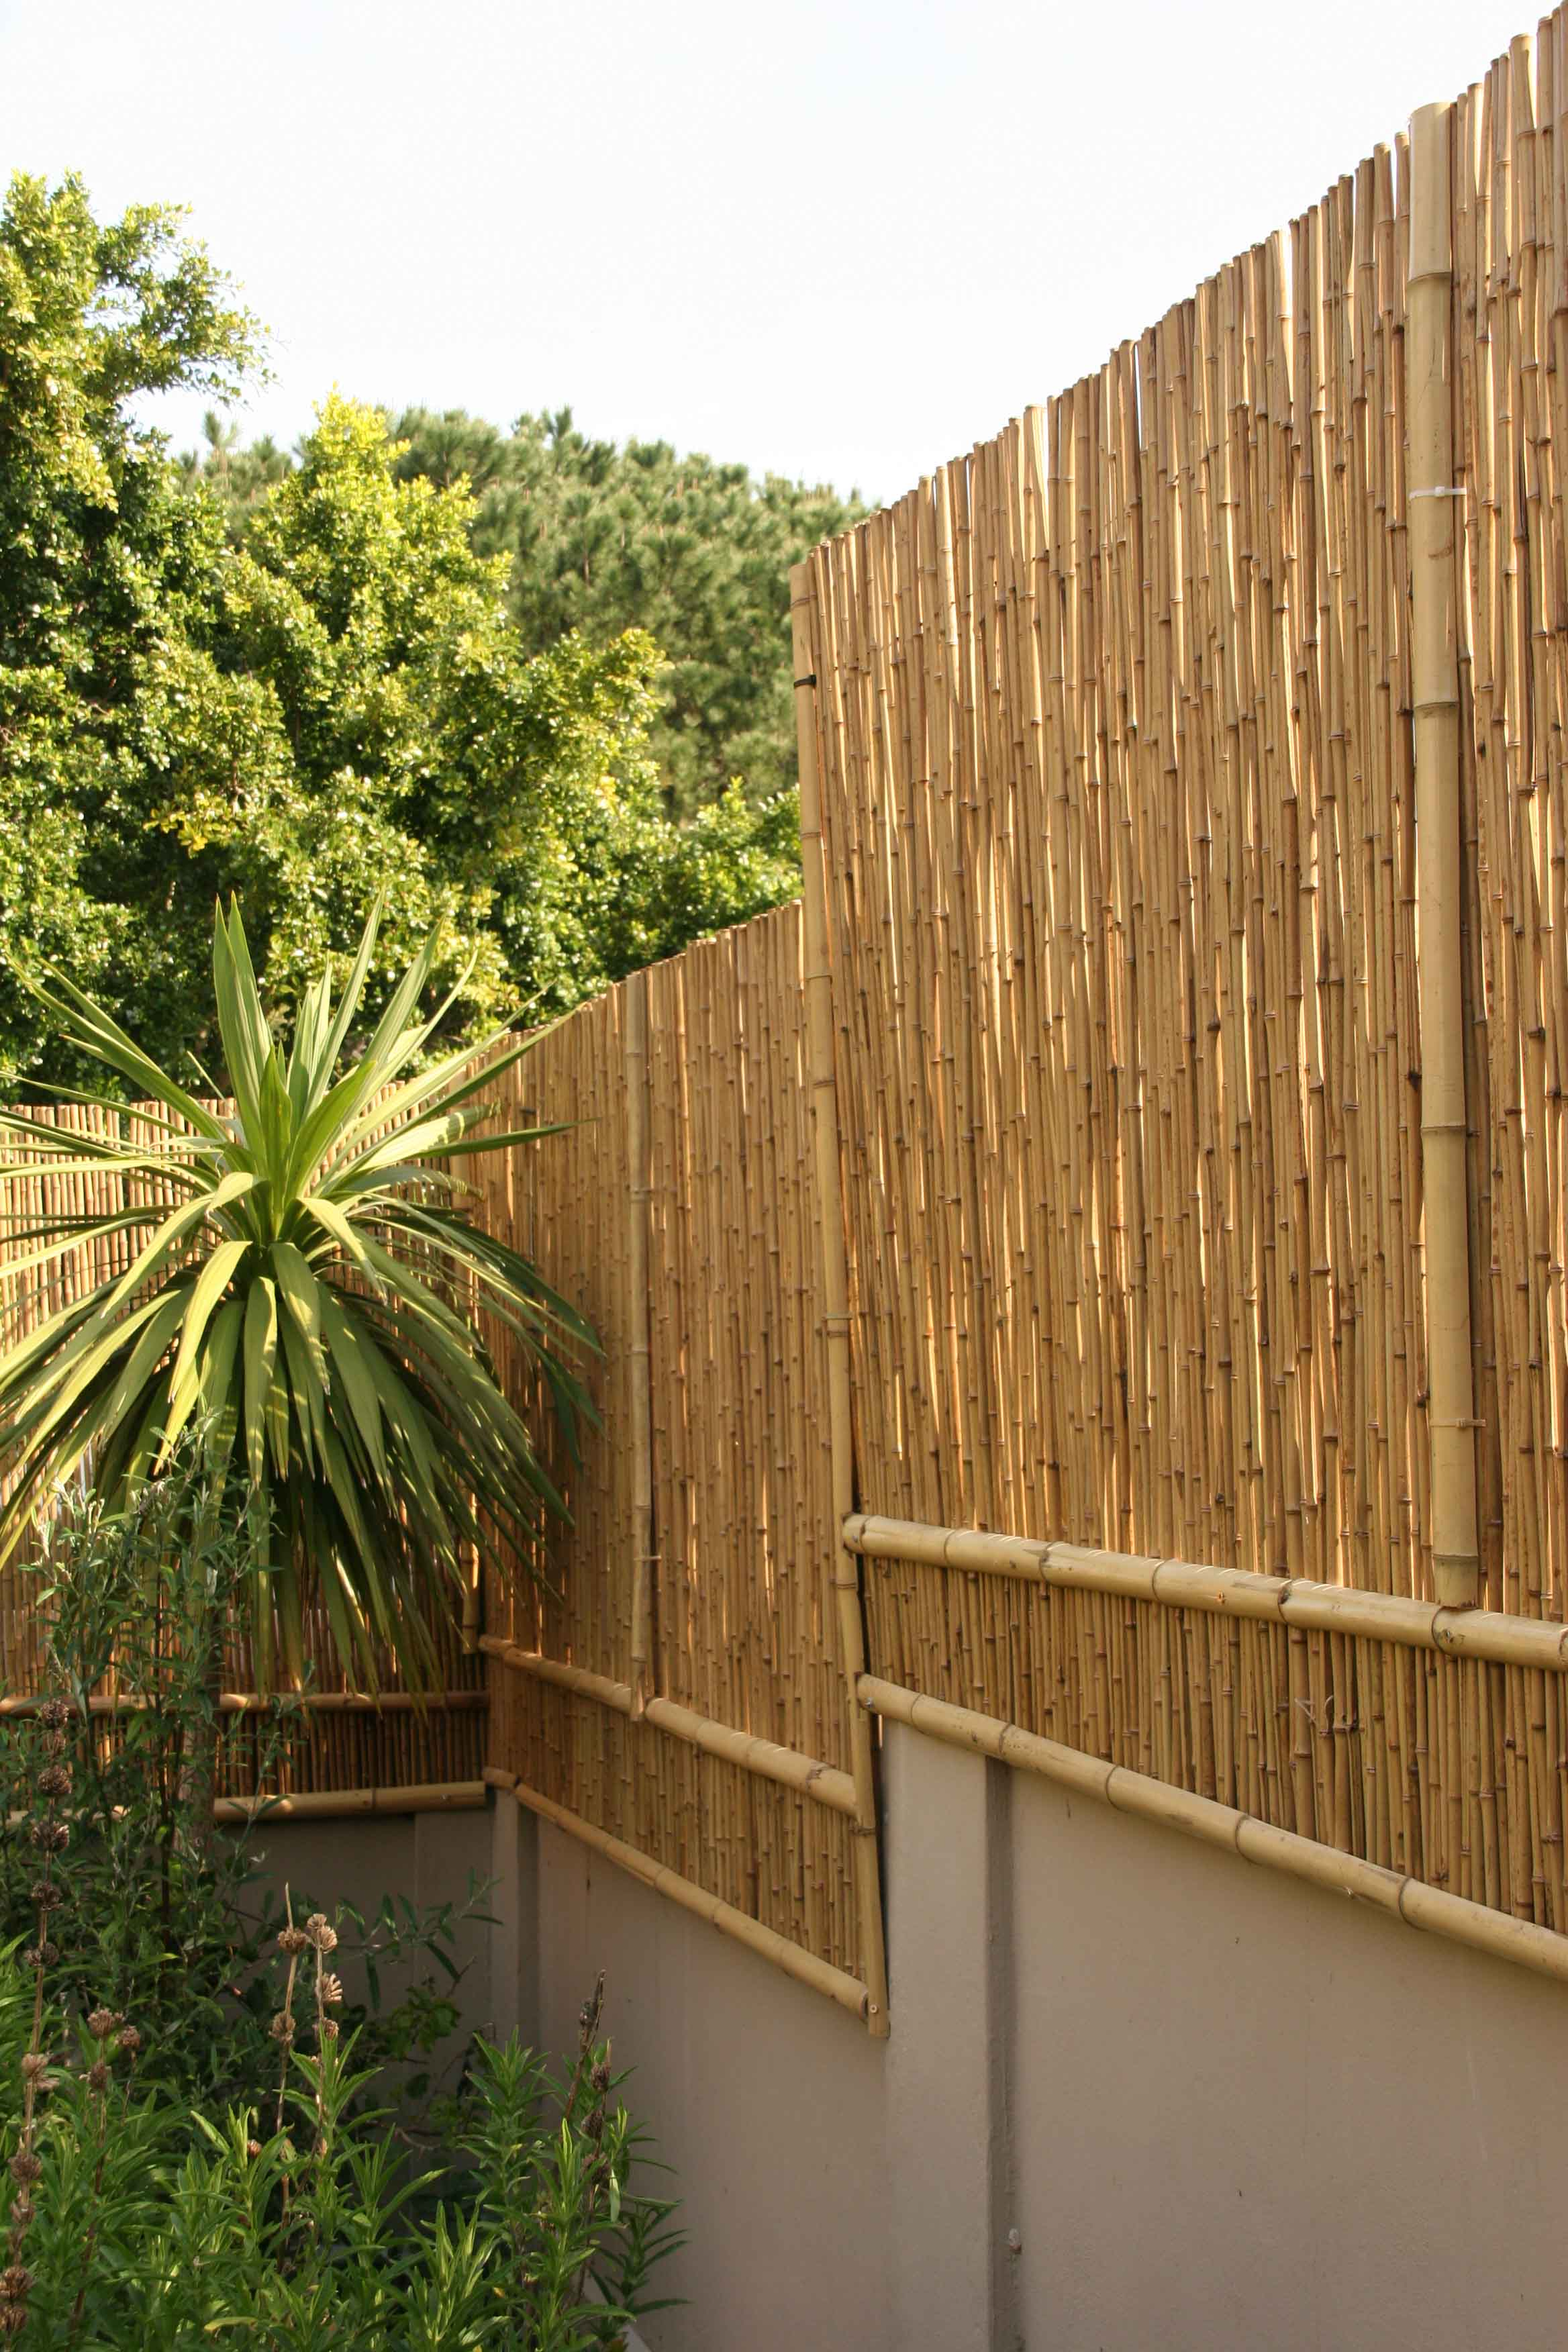 Invigorating Bamboo Rolled Fencing Internal Galvanized Steel Wire Bamboo Fences Brightfields Trading Company Bamboo Privacy Screen Walmart Bamboo Privacy Screen Chain Link Fence houzz 01 Bamboo Privacy Screen